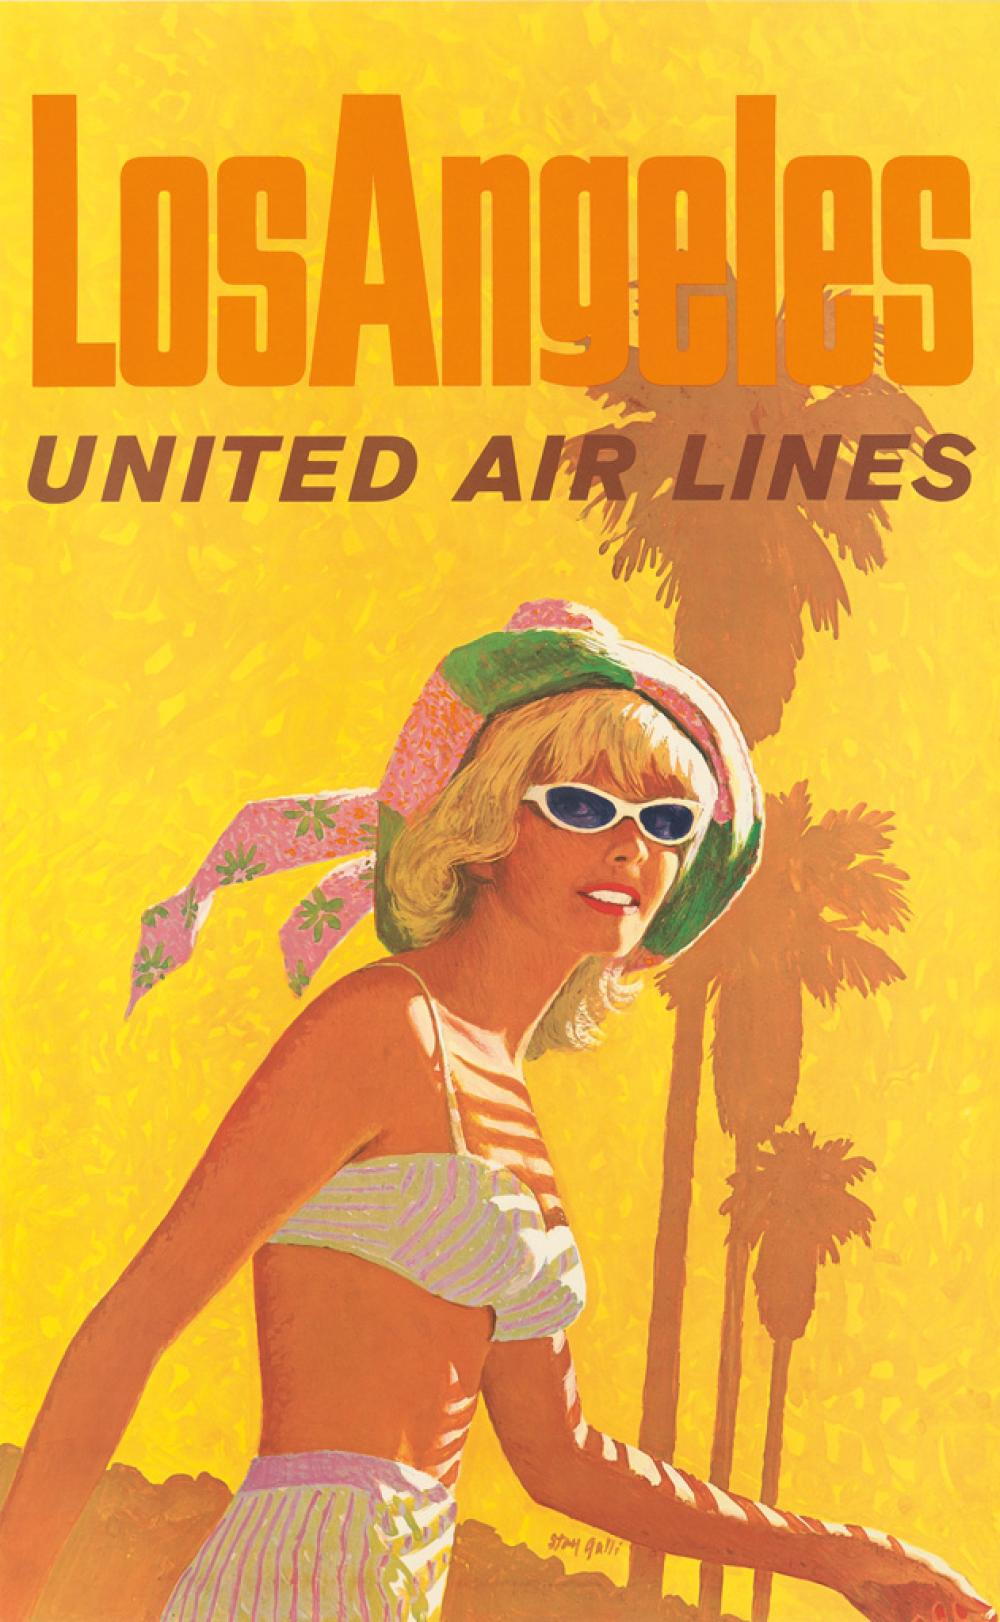 STANLEY WALTER GALLI (1912-2009). LOS ANGELES / UNITED AIR LINES. Circa 1960s. 40x24 inches, 101x63 cm.